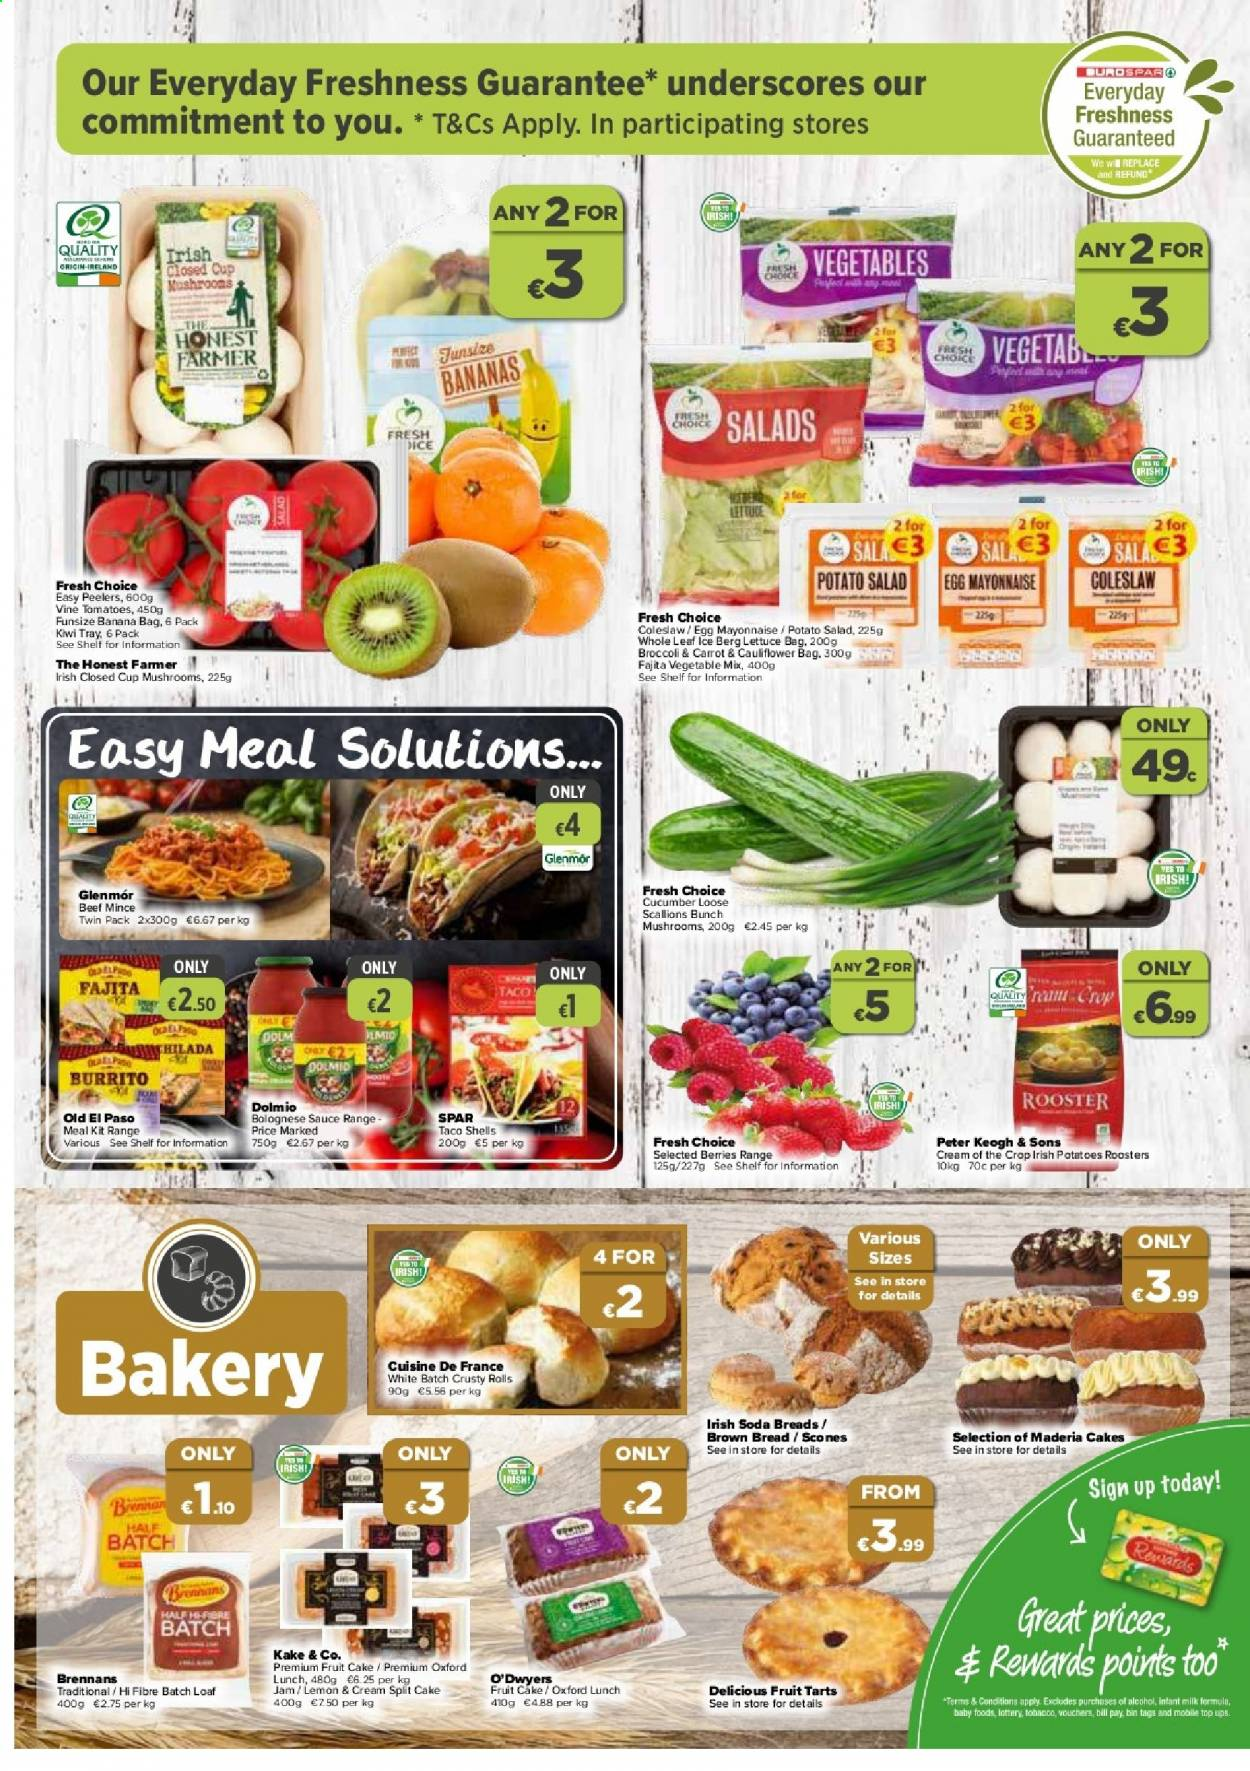 EUROSPAR offer  - 20.8.2020 - 9.9.2020 - Sales products - bag, bananas, beef meat, bin, bread, broccoli, cauliflower, cucumbers, cup, eggs, coleslaw, kiwi, mayonnaise, milk, mushrooms, scallions, shelf, tomatoes, tray, jam, potatoes, lettuce, soda, cake, vegetable, taco shells, crop, lee, salad, sauce, vegetables, fruit, ups, rolls, lemon, tomato. Page 3.